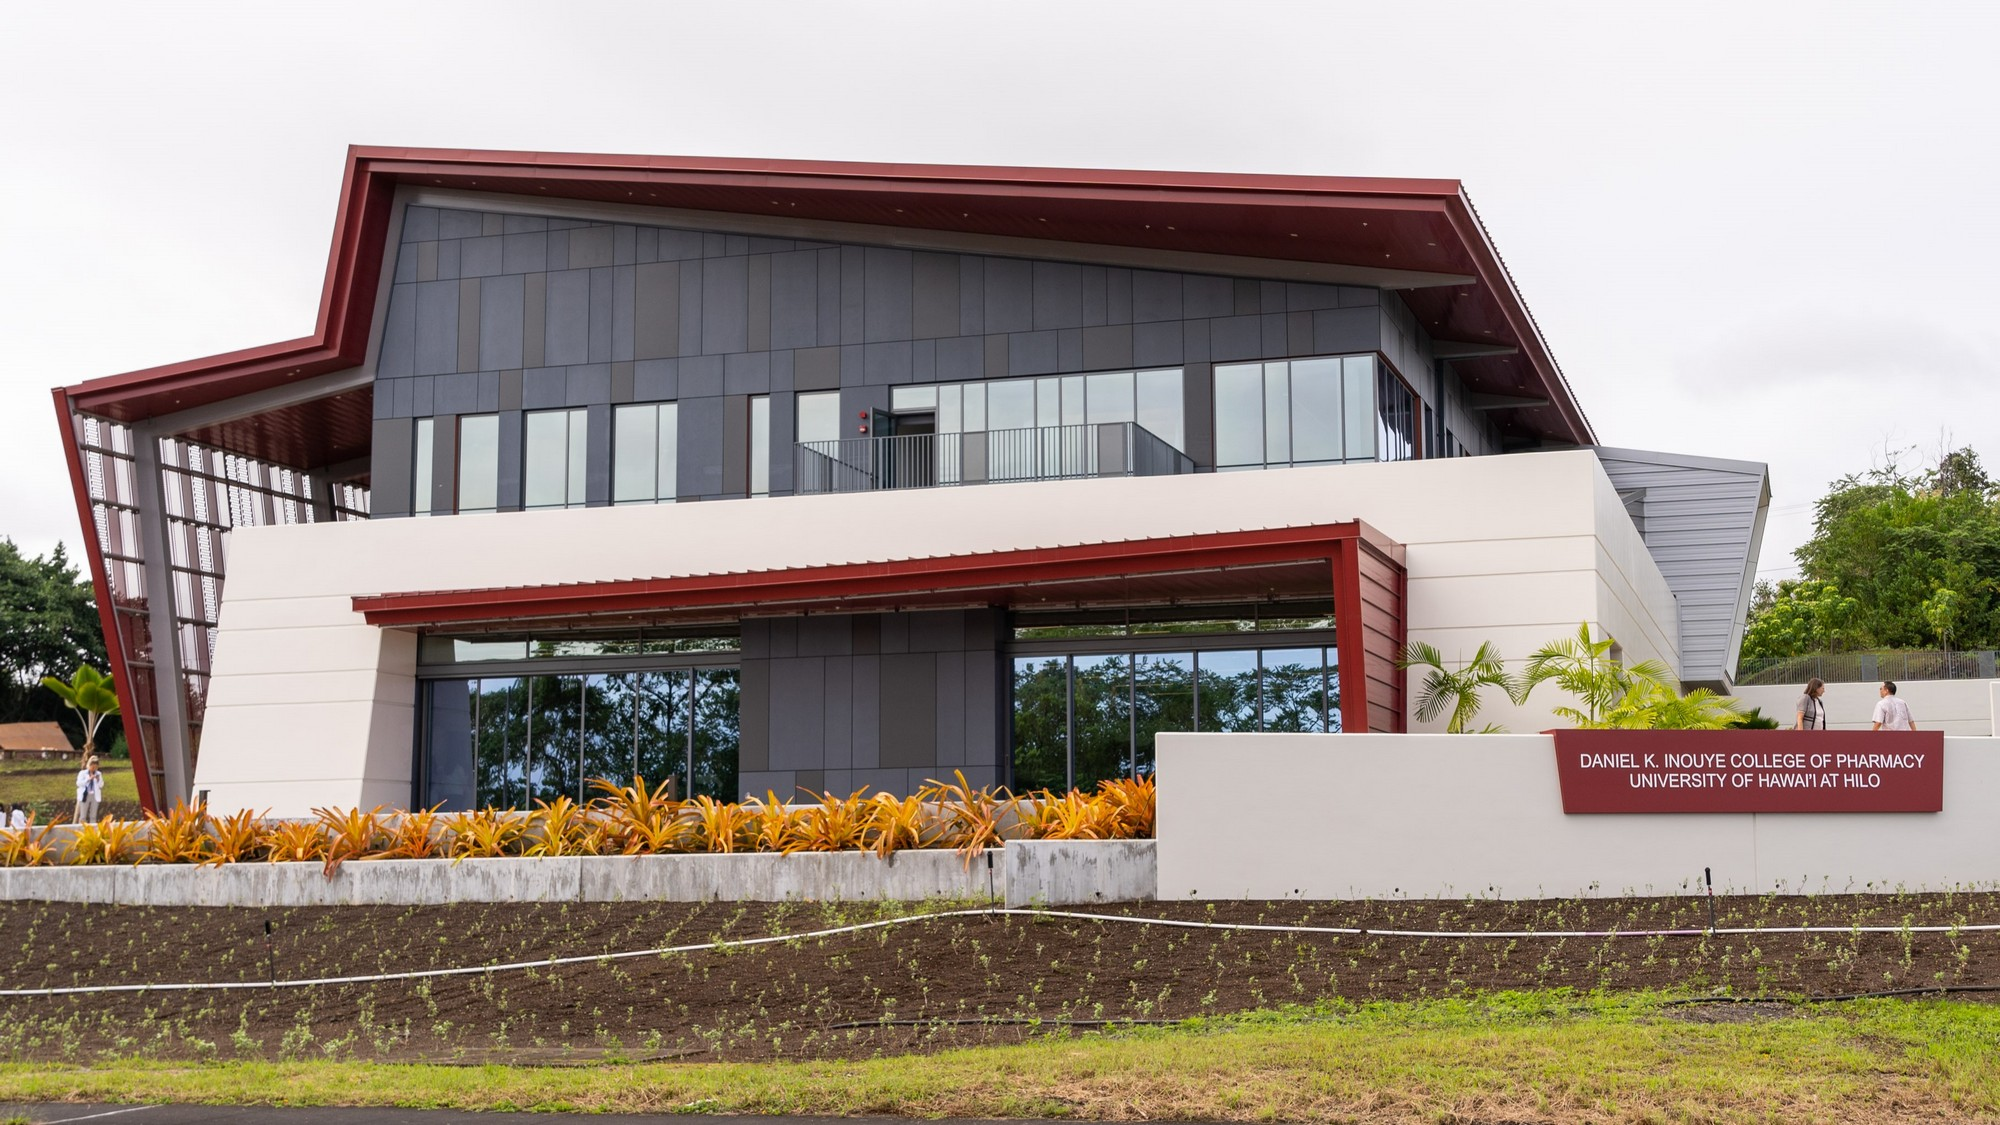 Two-story building, contemporary design, angled red rooftop, lots of windows, newly planted gardens in front. Signage: Daniel. K. Inouye College of Pharmacy, University of Hawaii at Hilo.